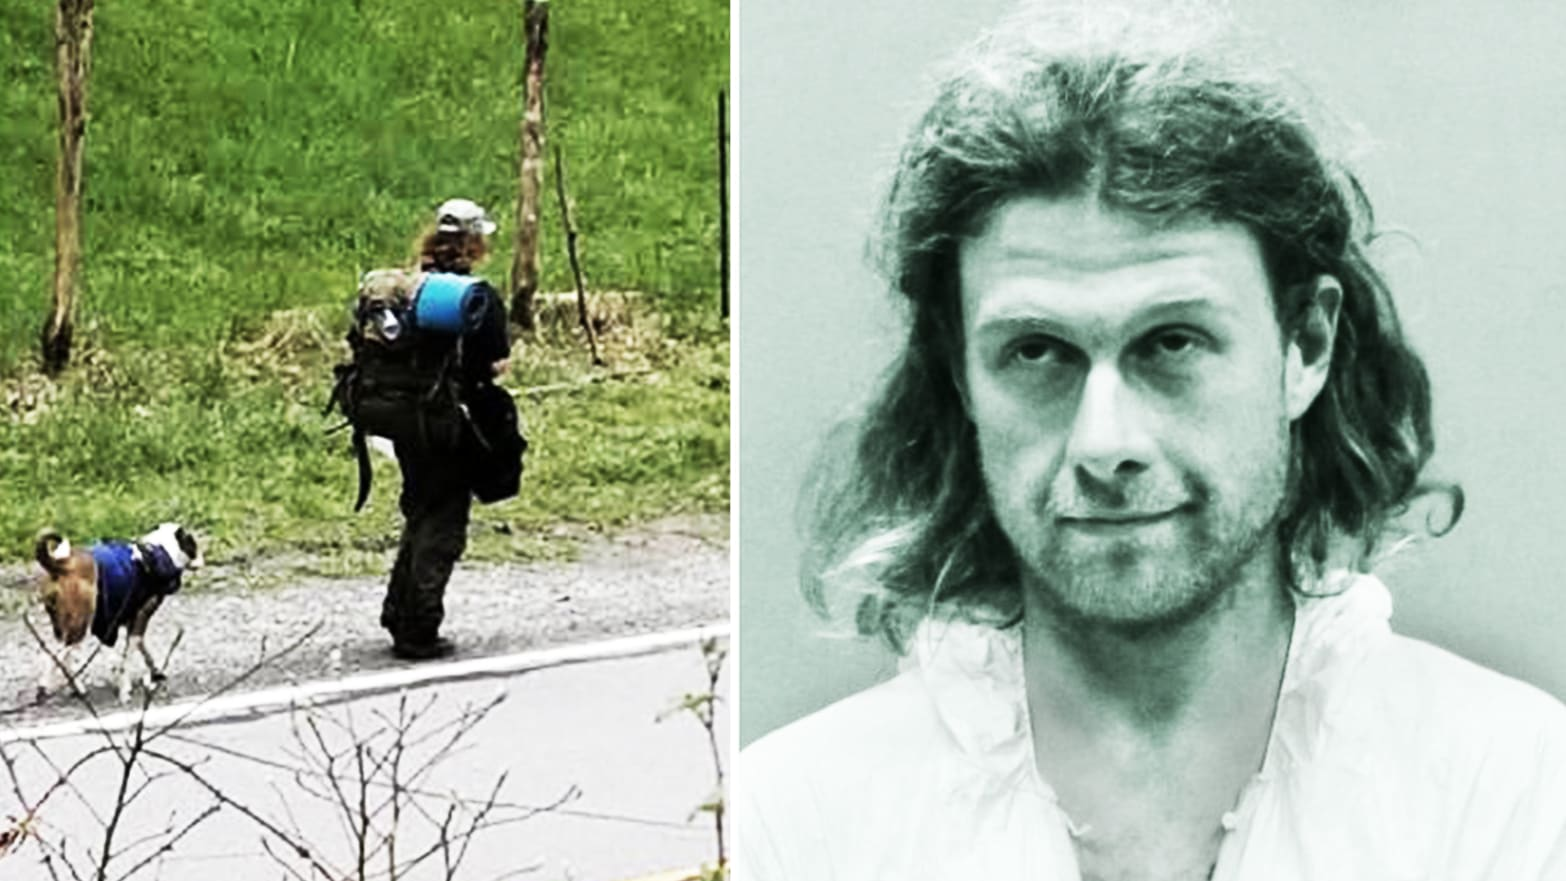 James Jordan Charged With Hacking Appalachian Trail Hiker to Death Weeks After Release From Jail